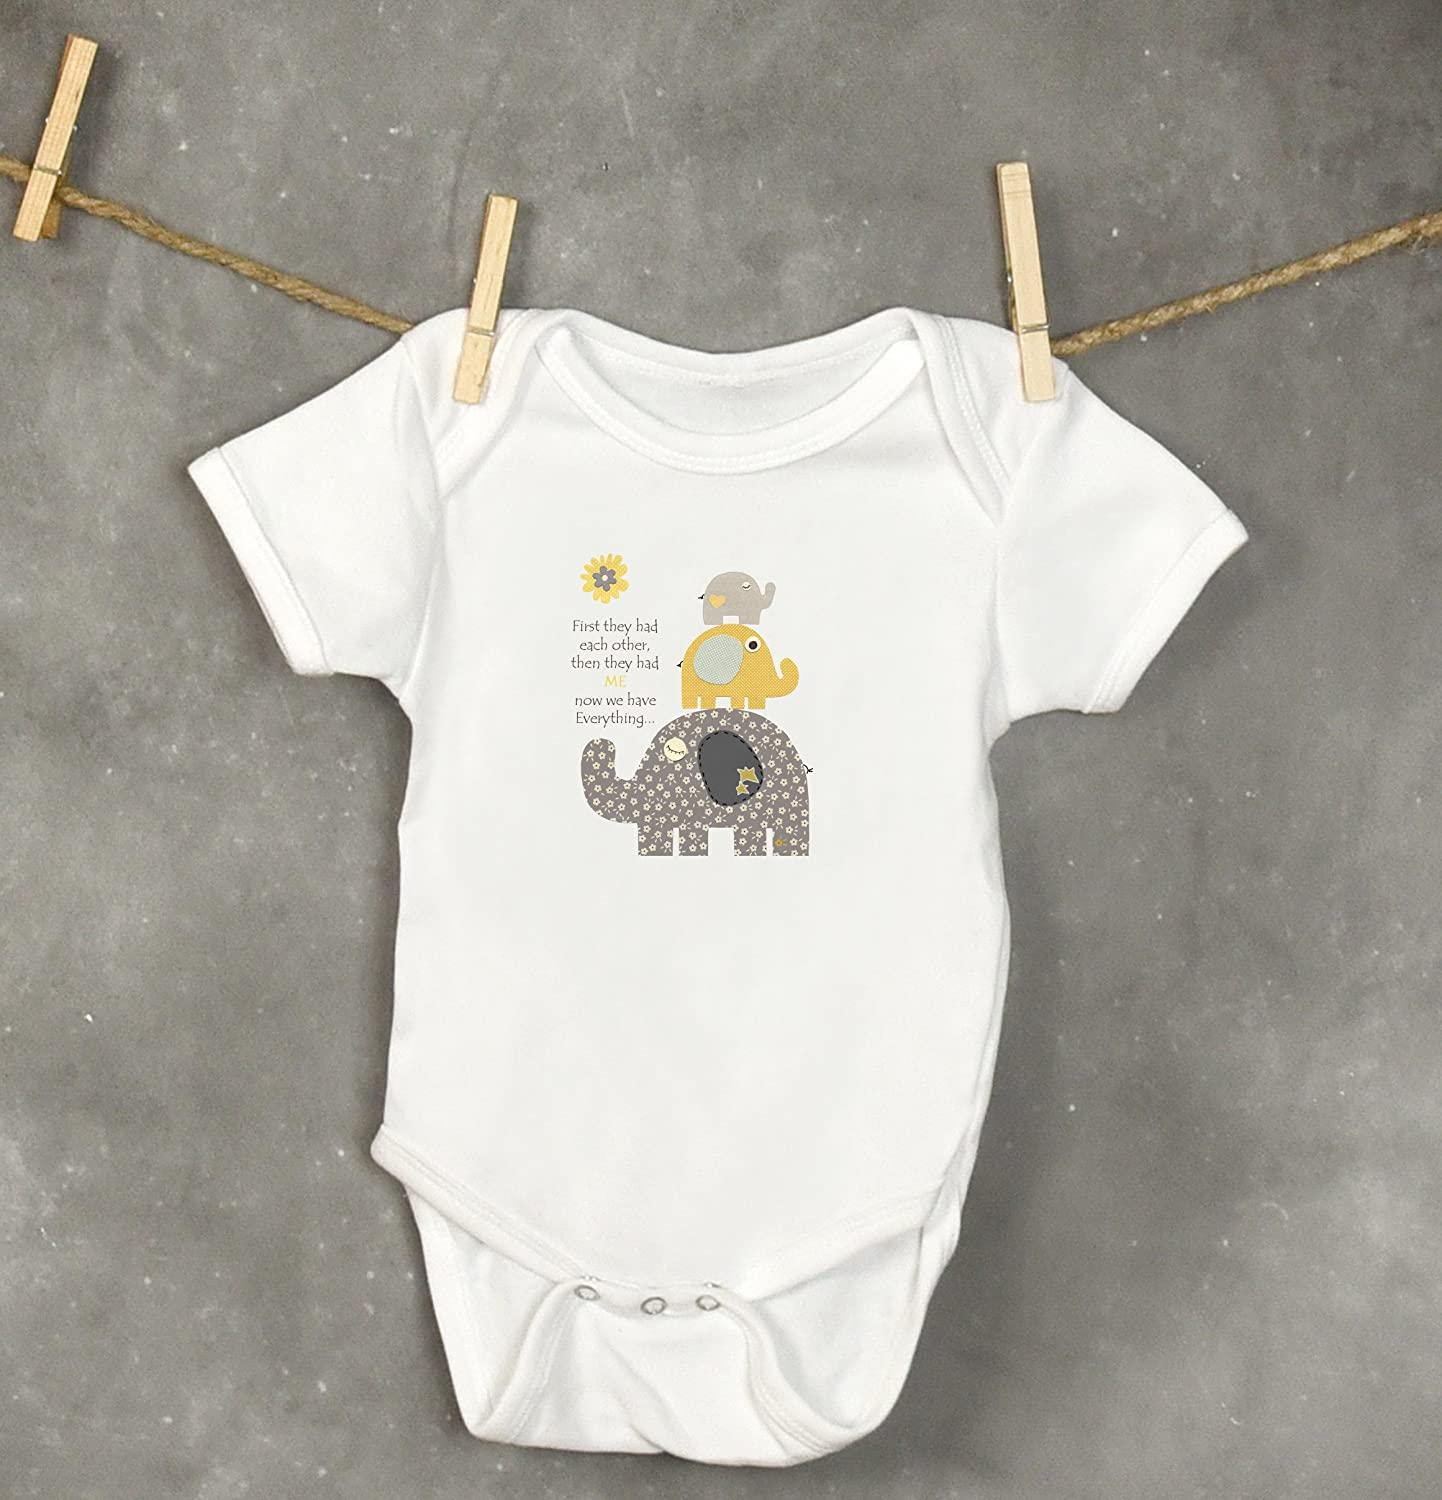 Baby Clothes Onesie Baby Bodysuit Cotton Comfortable Free Shipment